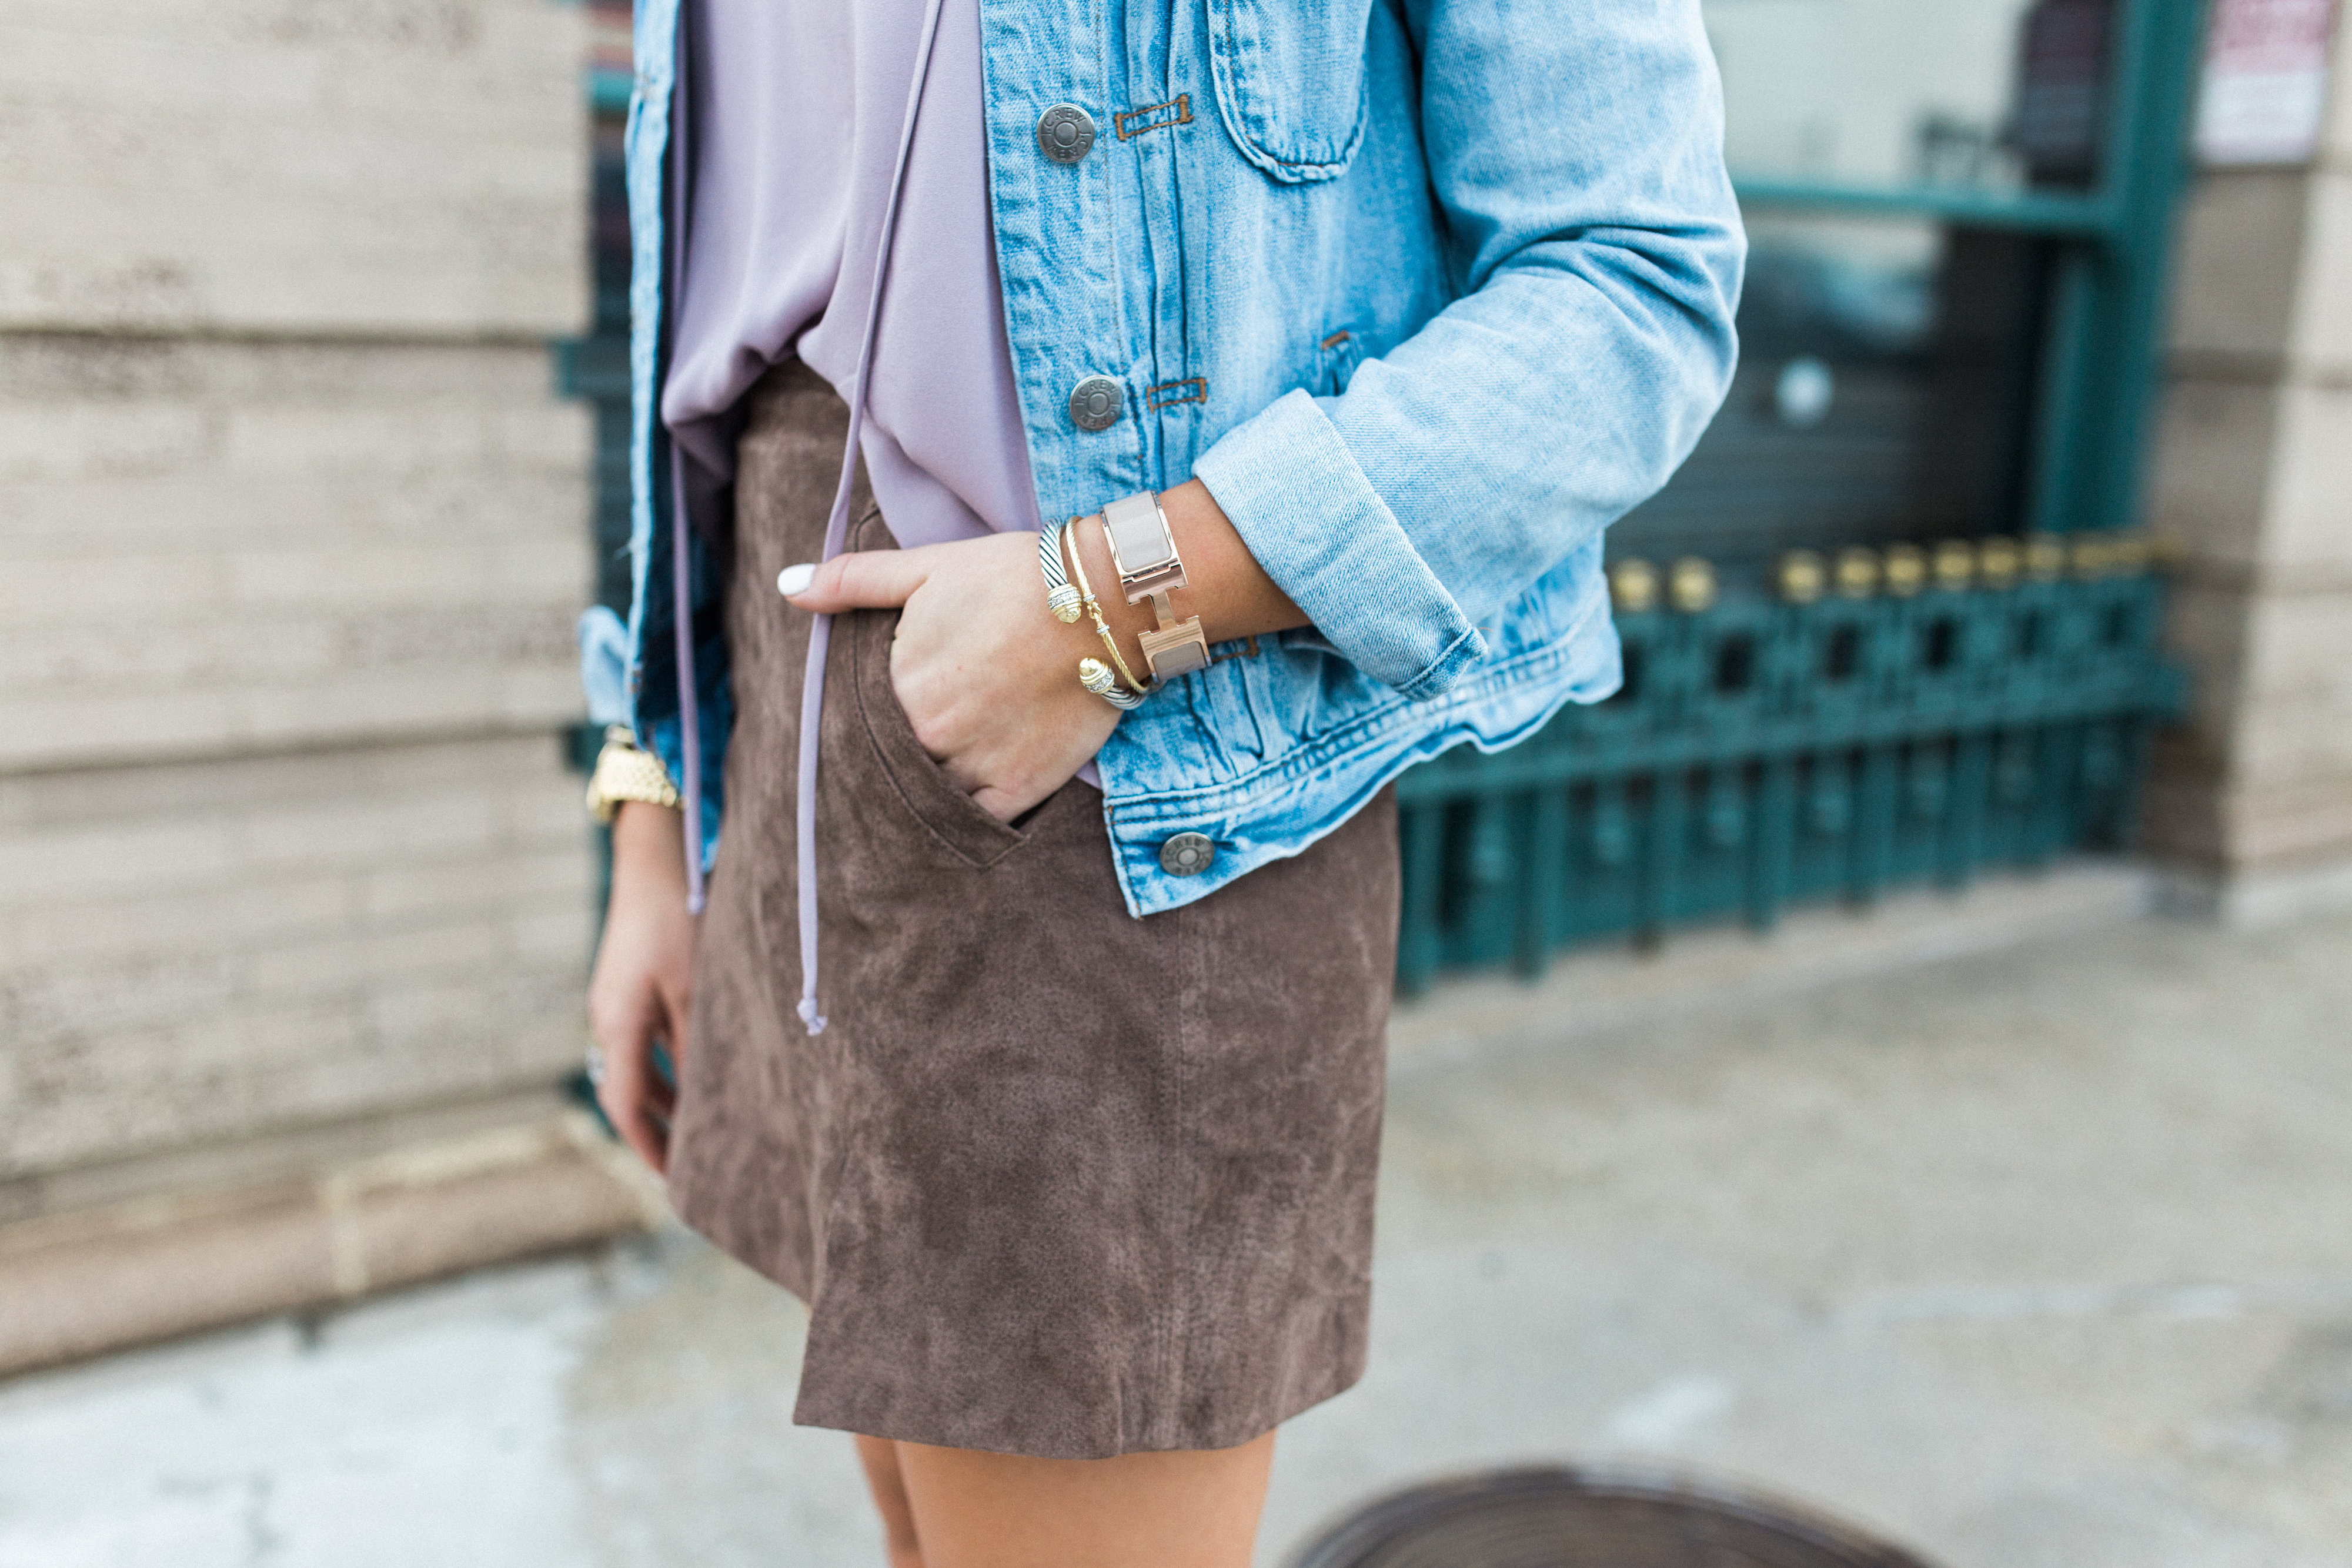 How to style a suede skirt for spring // Blank NYC Spring Suede Skirt, Vince Camuto Lace Up Sandals, How to wear a denim jacket // Spring style inspiration // Spring outfit idea via Glitter & Gingham